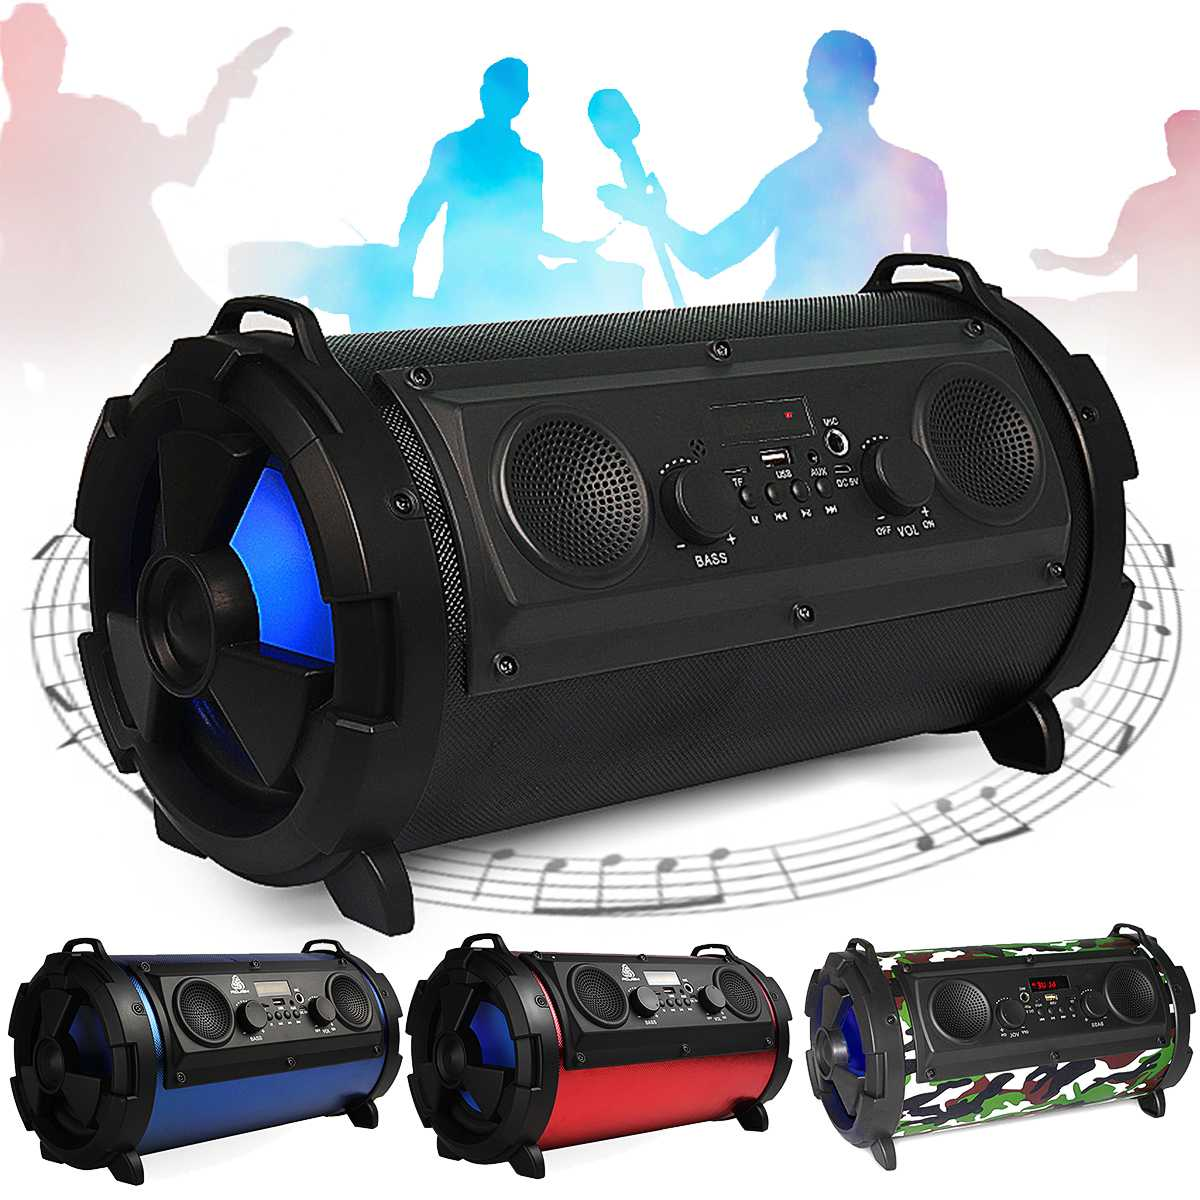 30W Portable bluetooth Speaker Loudspeakers Soundbar Subwoofer Sound Stereo Bass Music Player FM Radio AUX TF Outdoor Speakers30W Portable bluetooth Speaker Loudspeakers Soundbar Subwoofer Sound Stereo Bass Music Player FM Radio AUX TF Outdoor Speakers